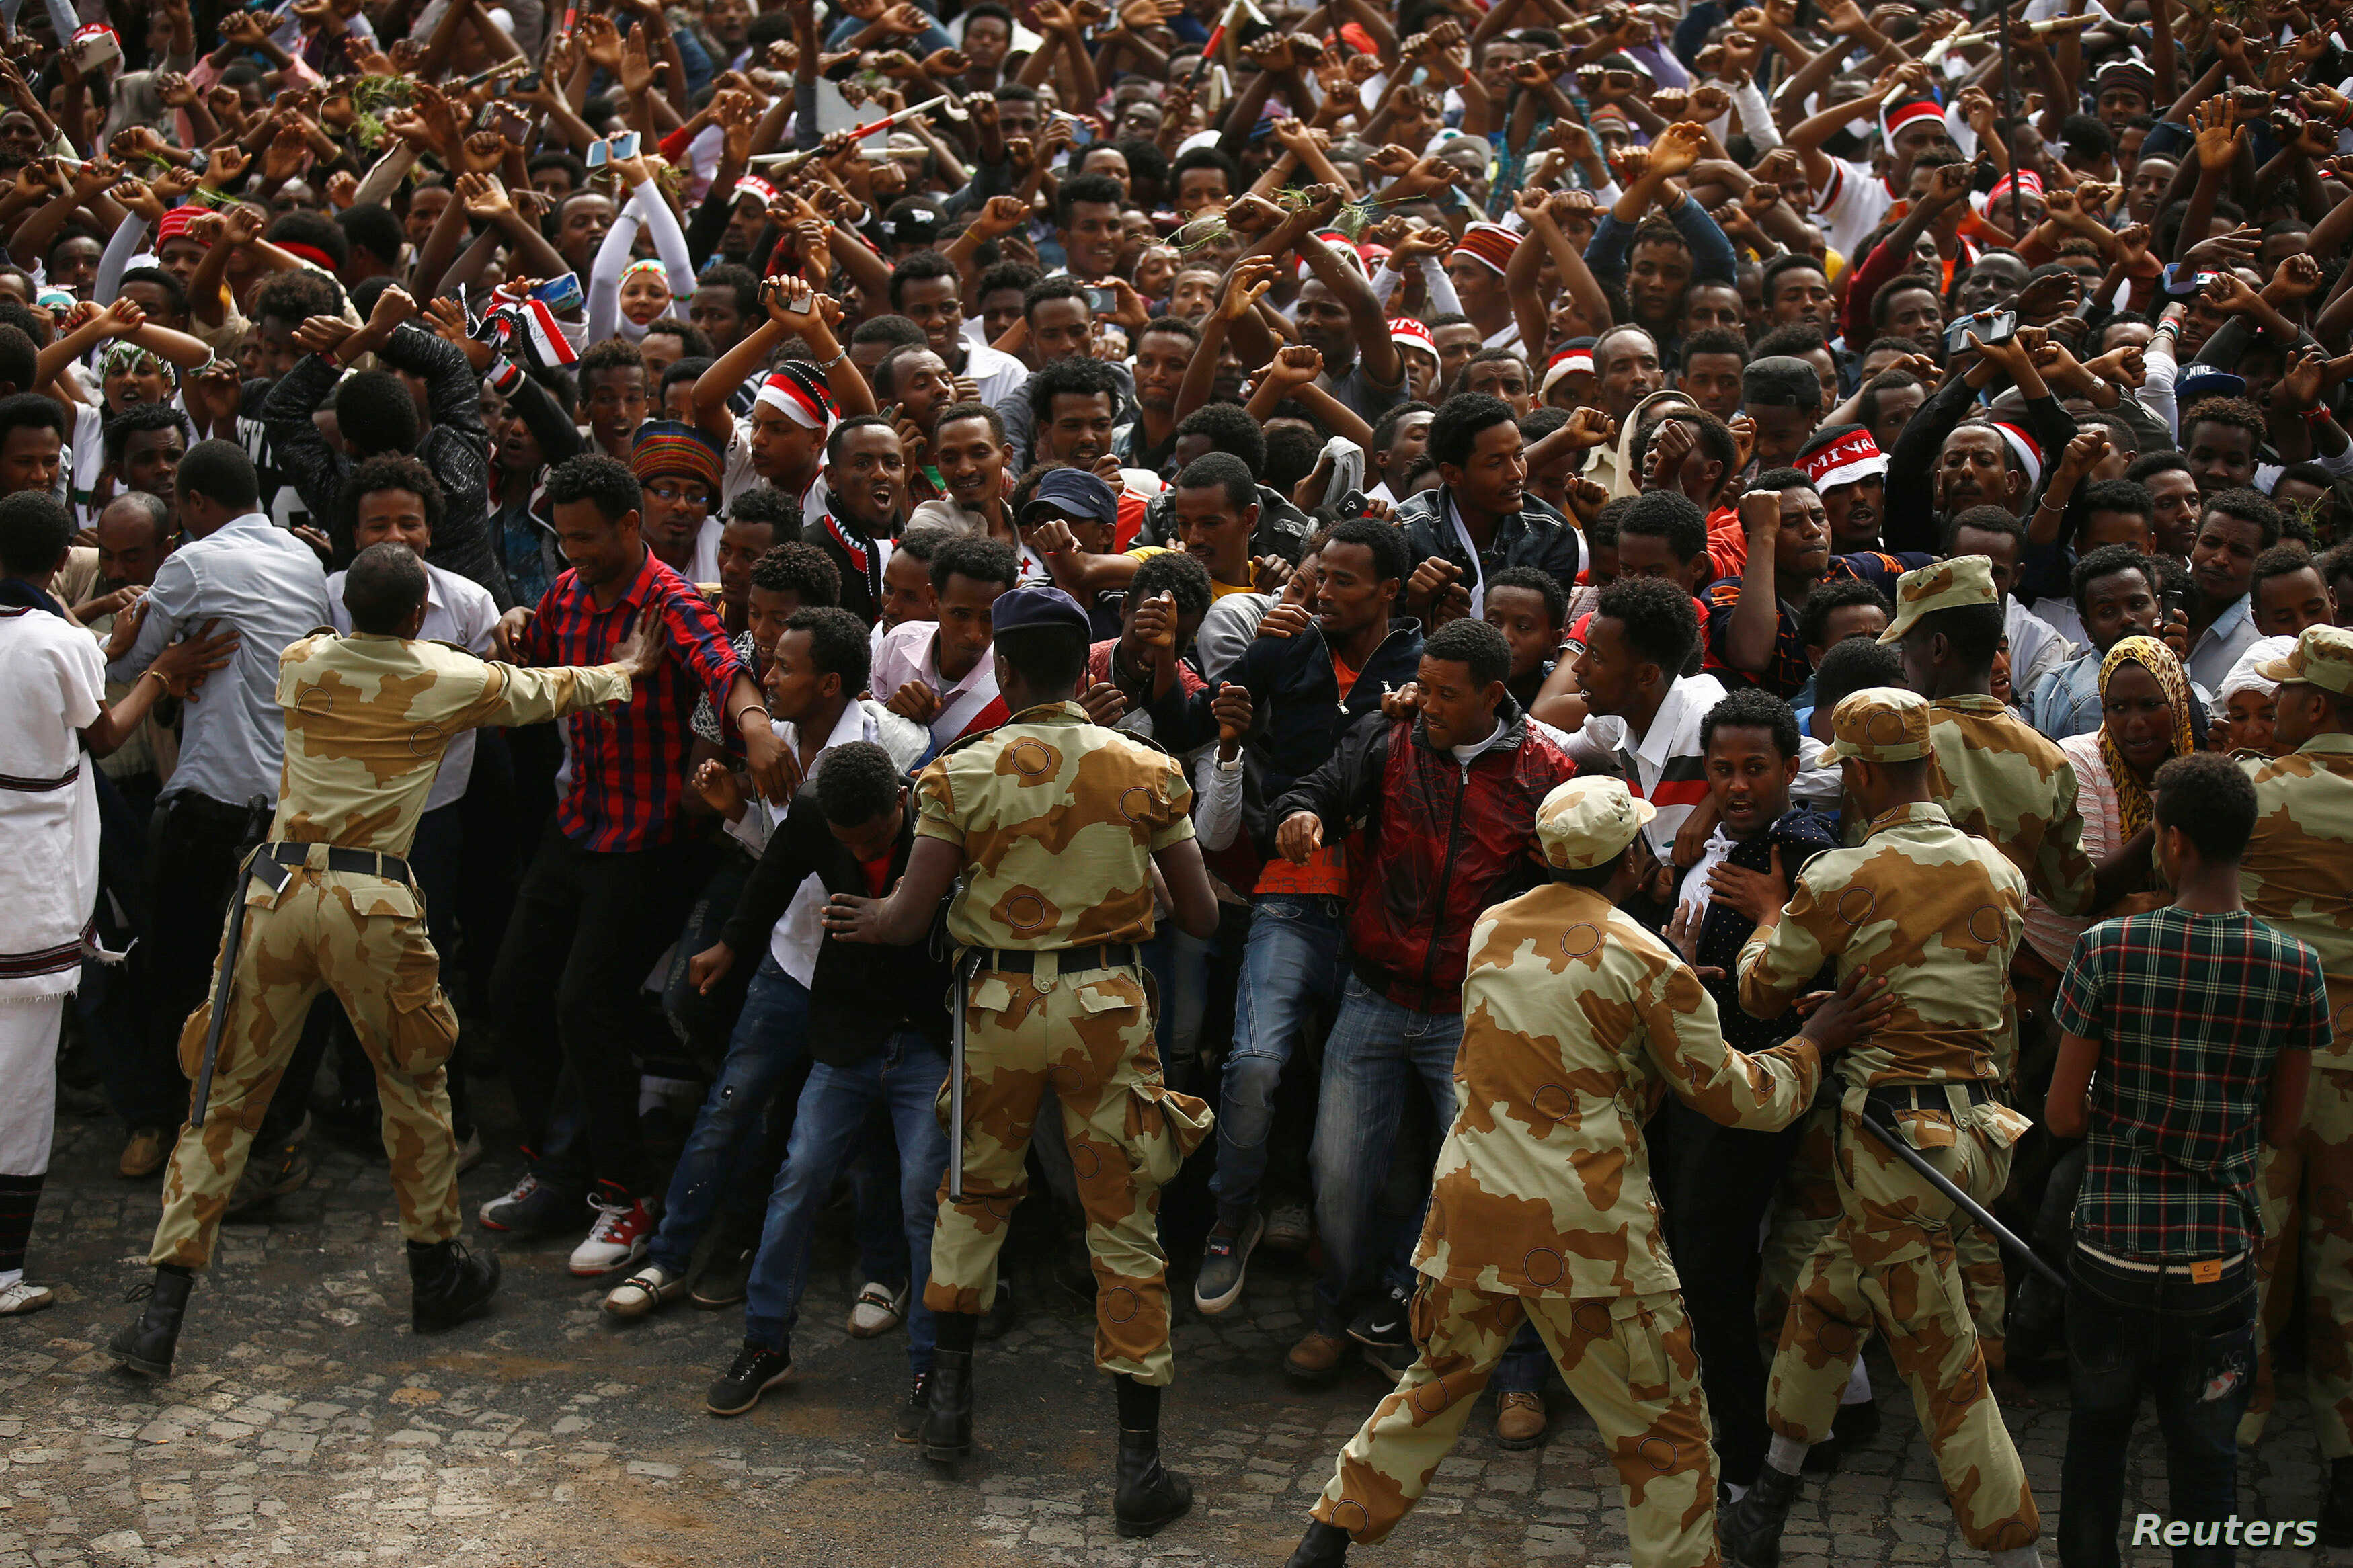 HRW Urges Ethiopian Government to Exercise Restraint at